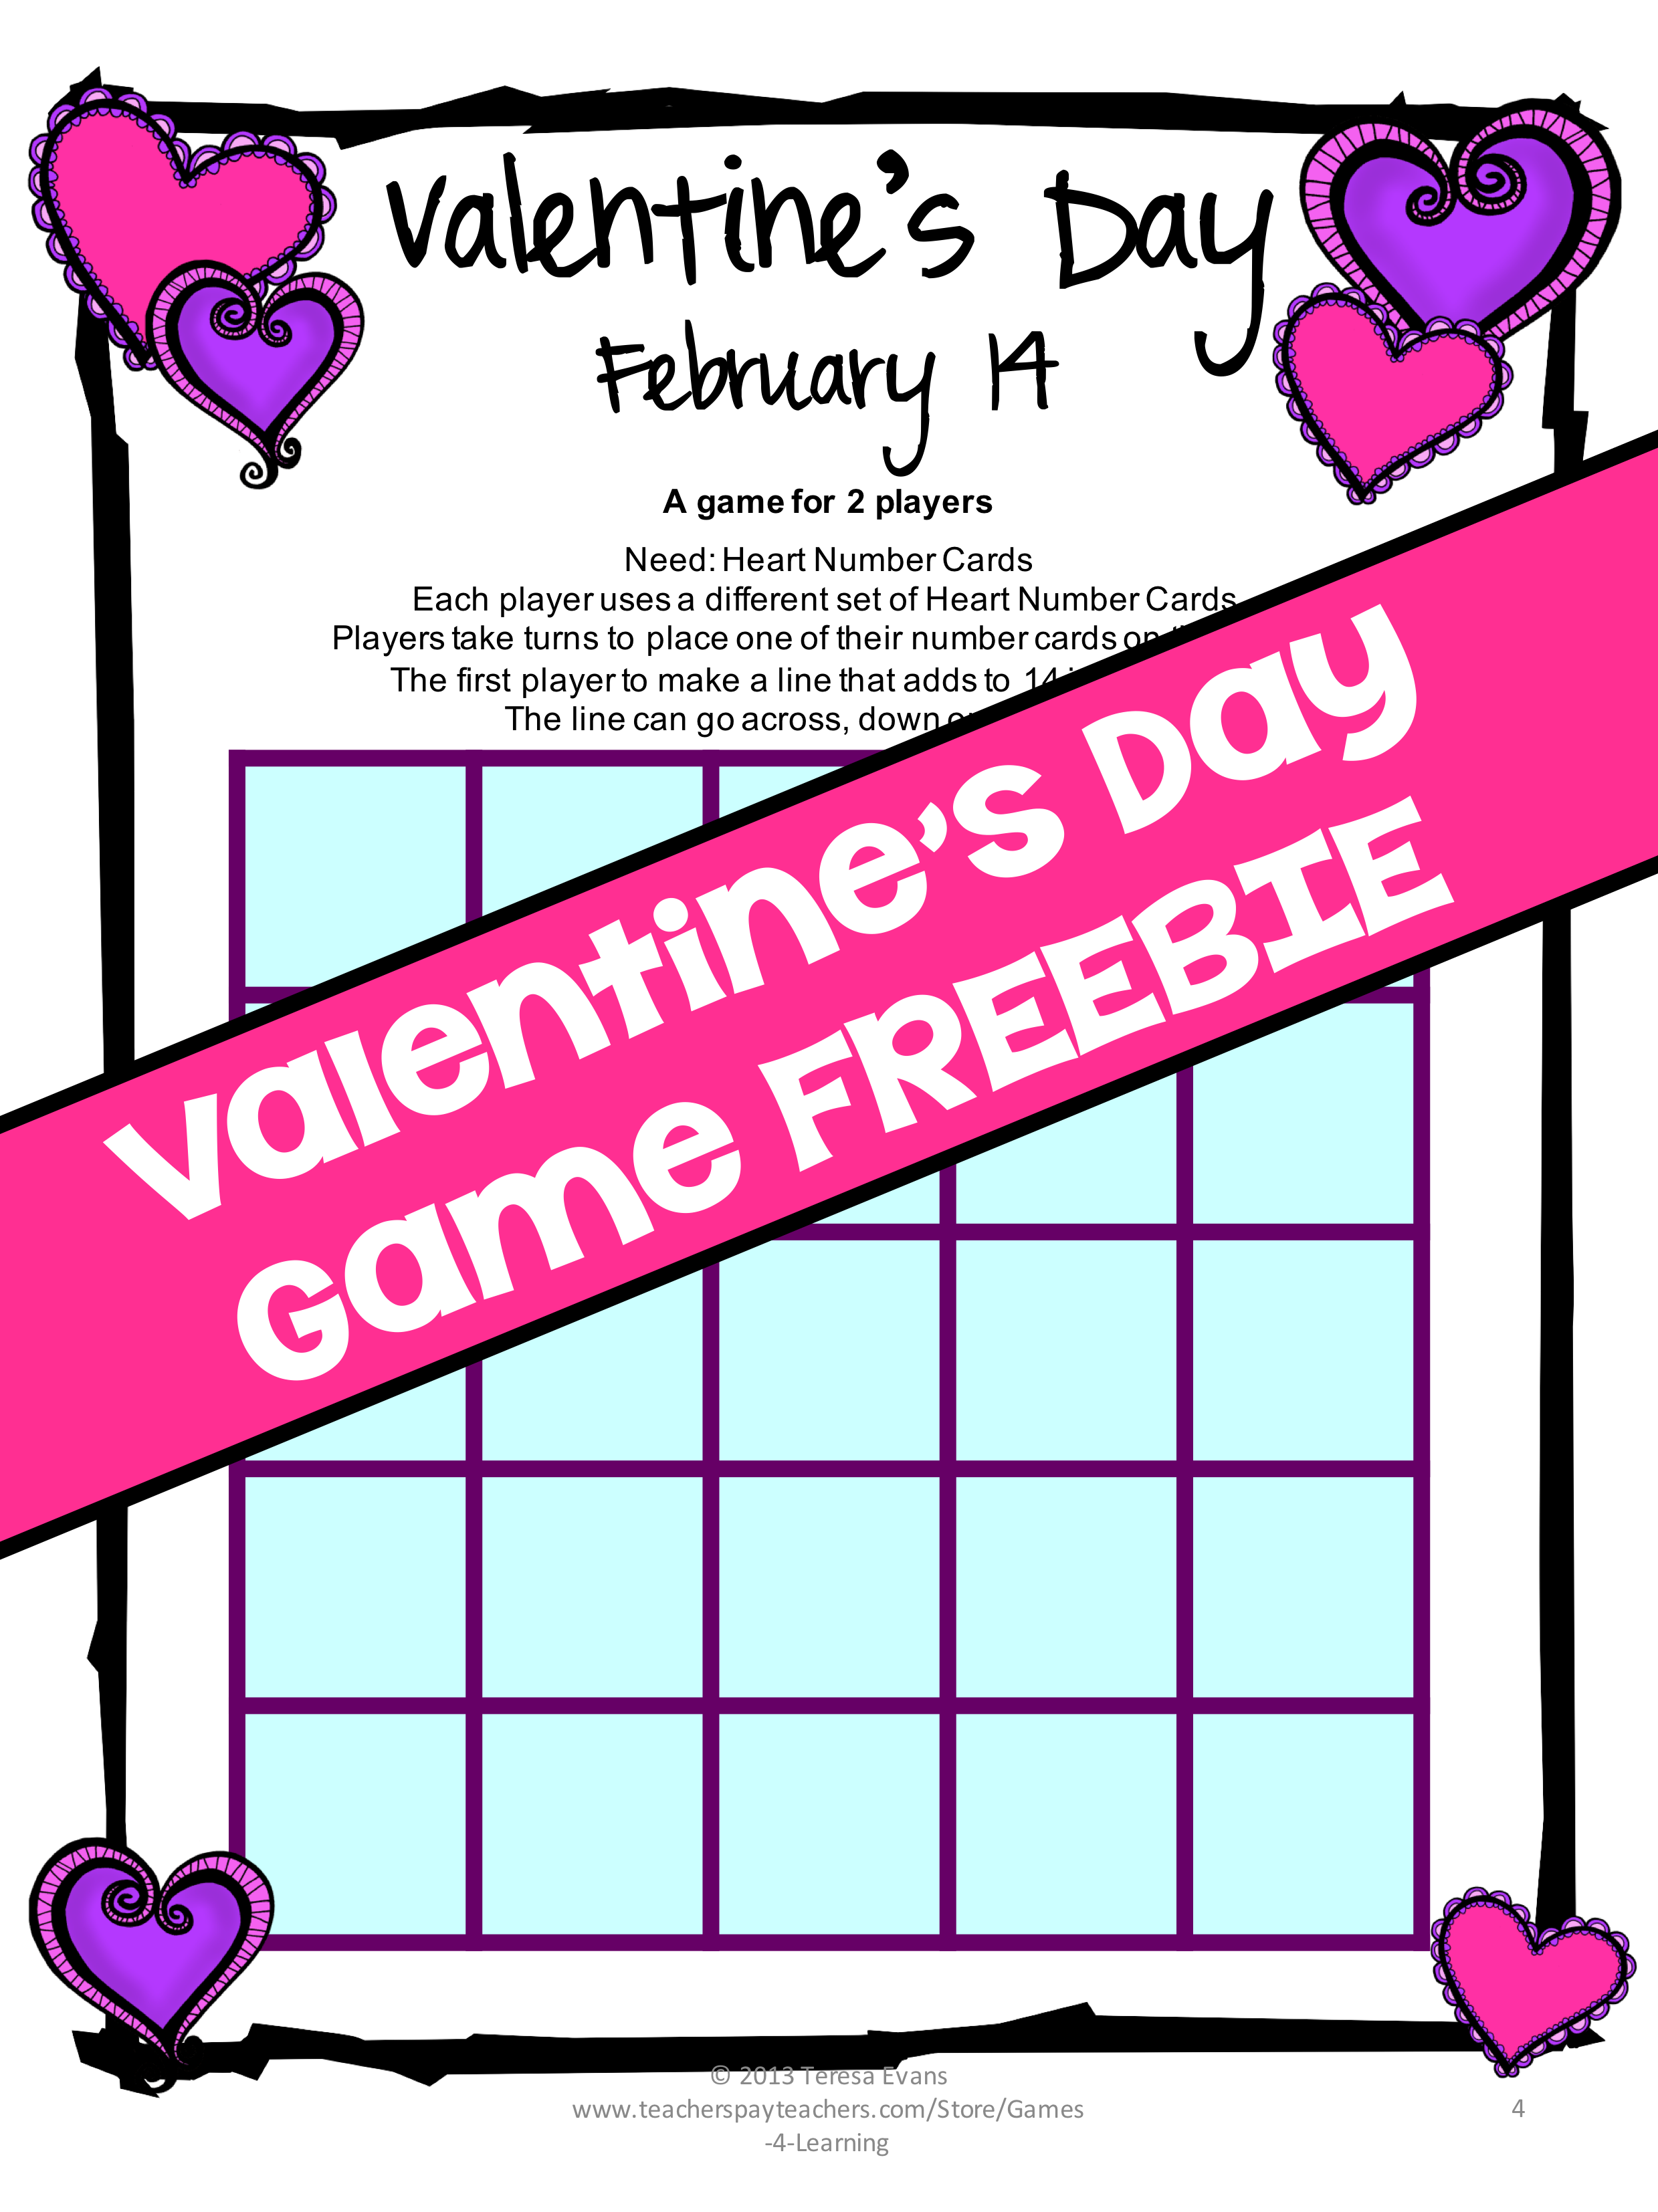 FREEBIE: A Valentines Day Math Game! | Math Freebies | Pinterest ...